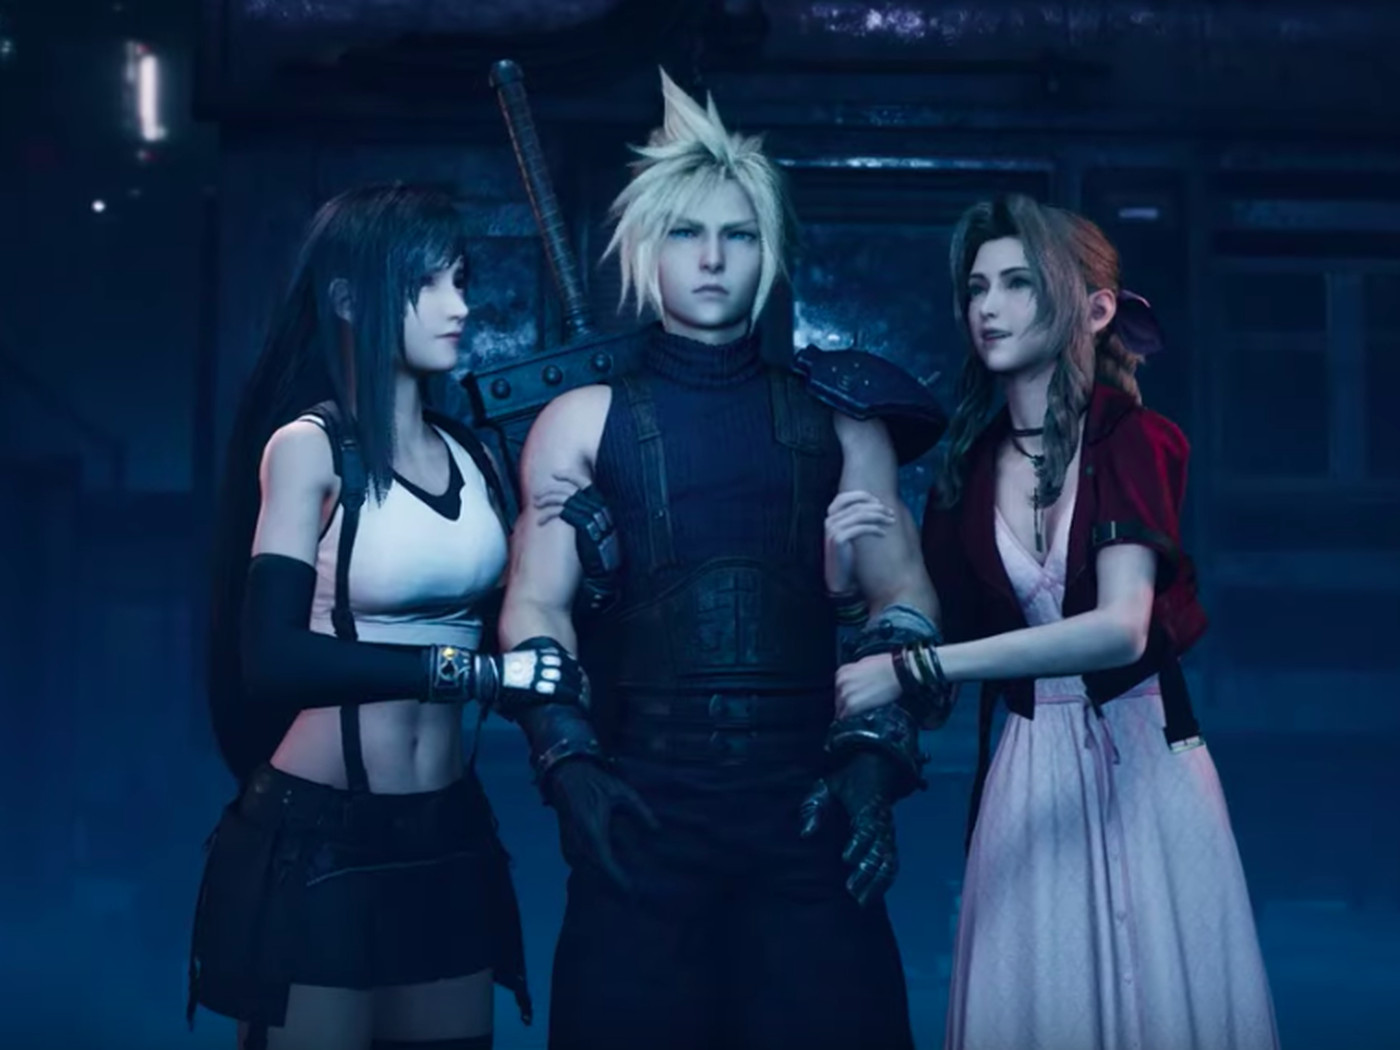 Final Fantasy 7 Remake S Tgs Trailer Is Full Of Familiar Scenes